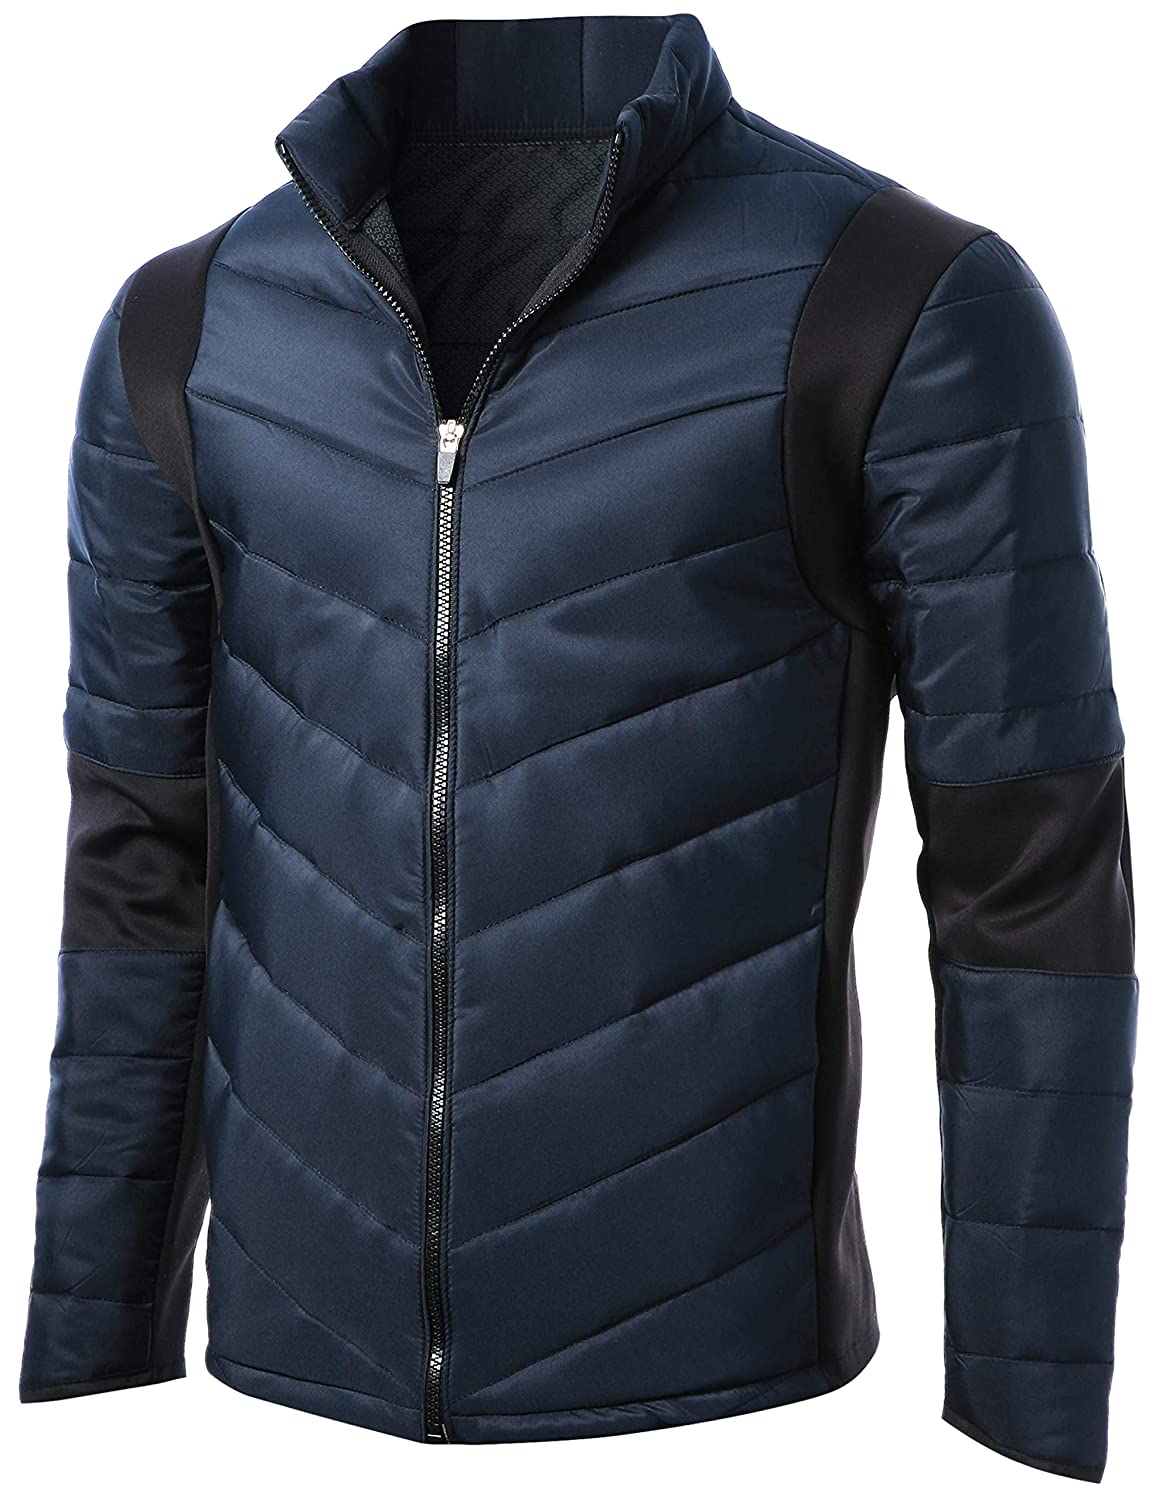 GIVON Mens Slim Fit Lightweight Activity Down Jacket with Black Accent DCJ013-NAVY-S